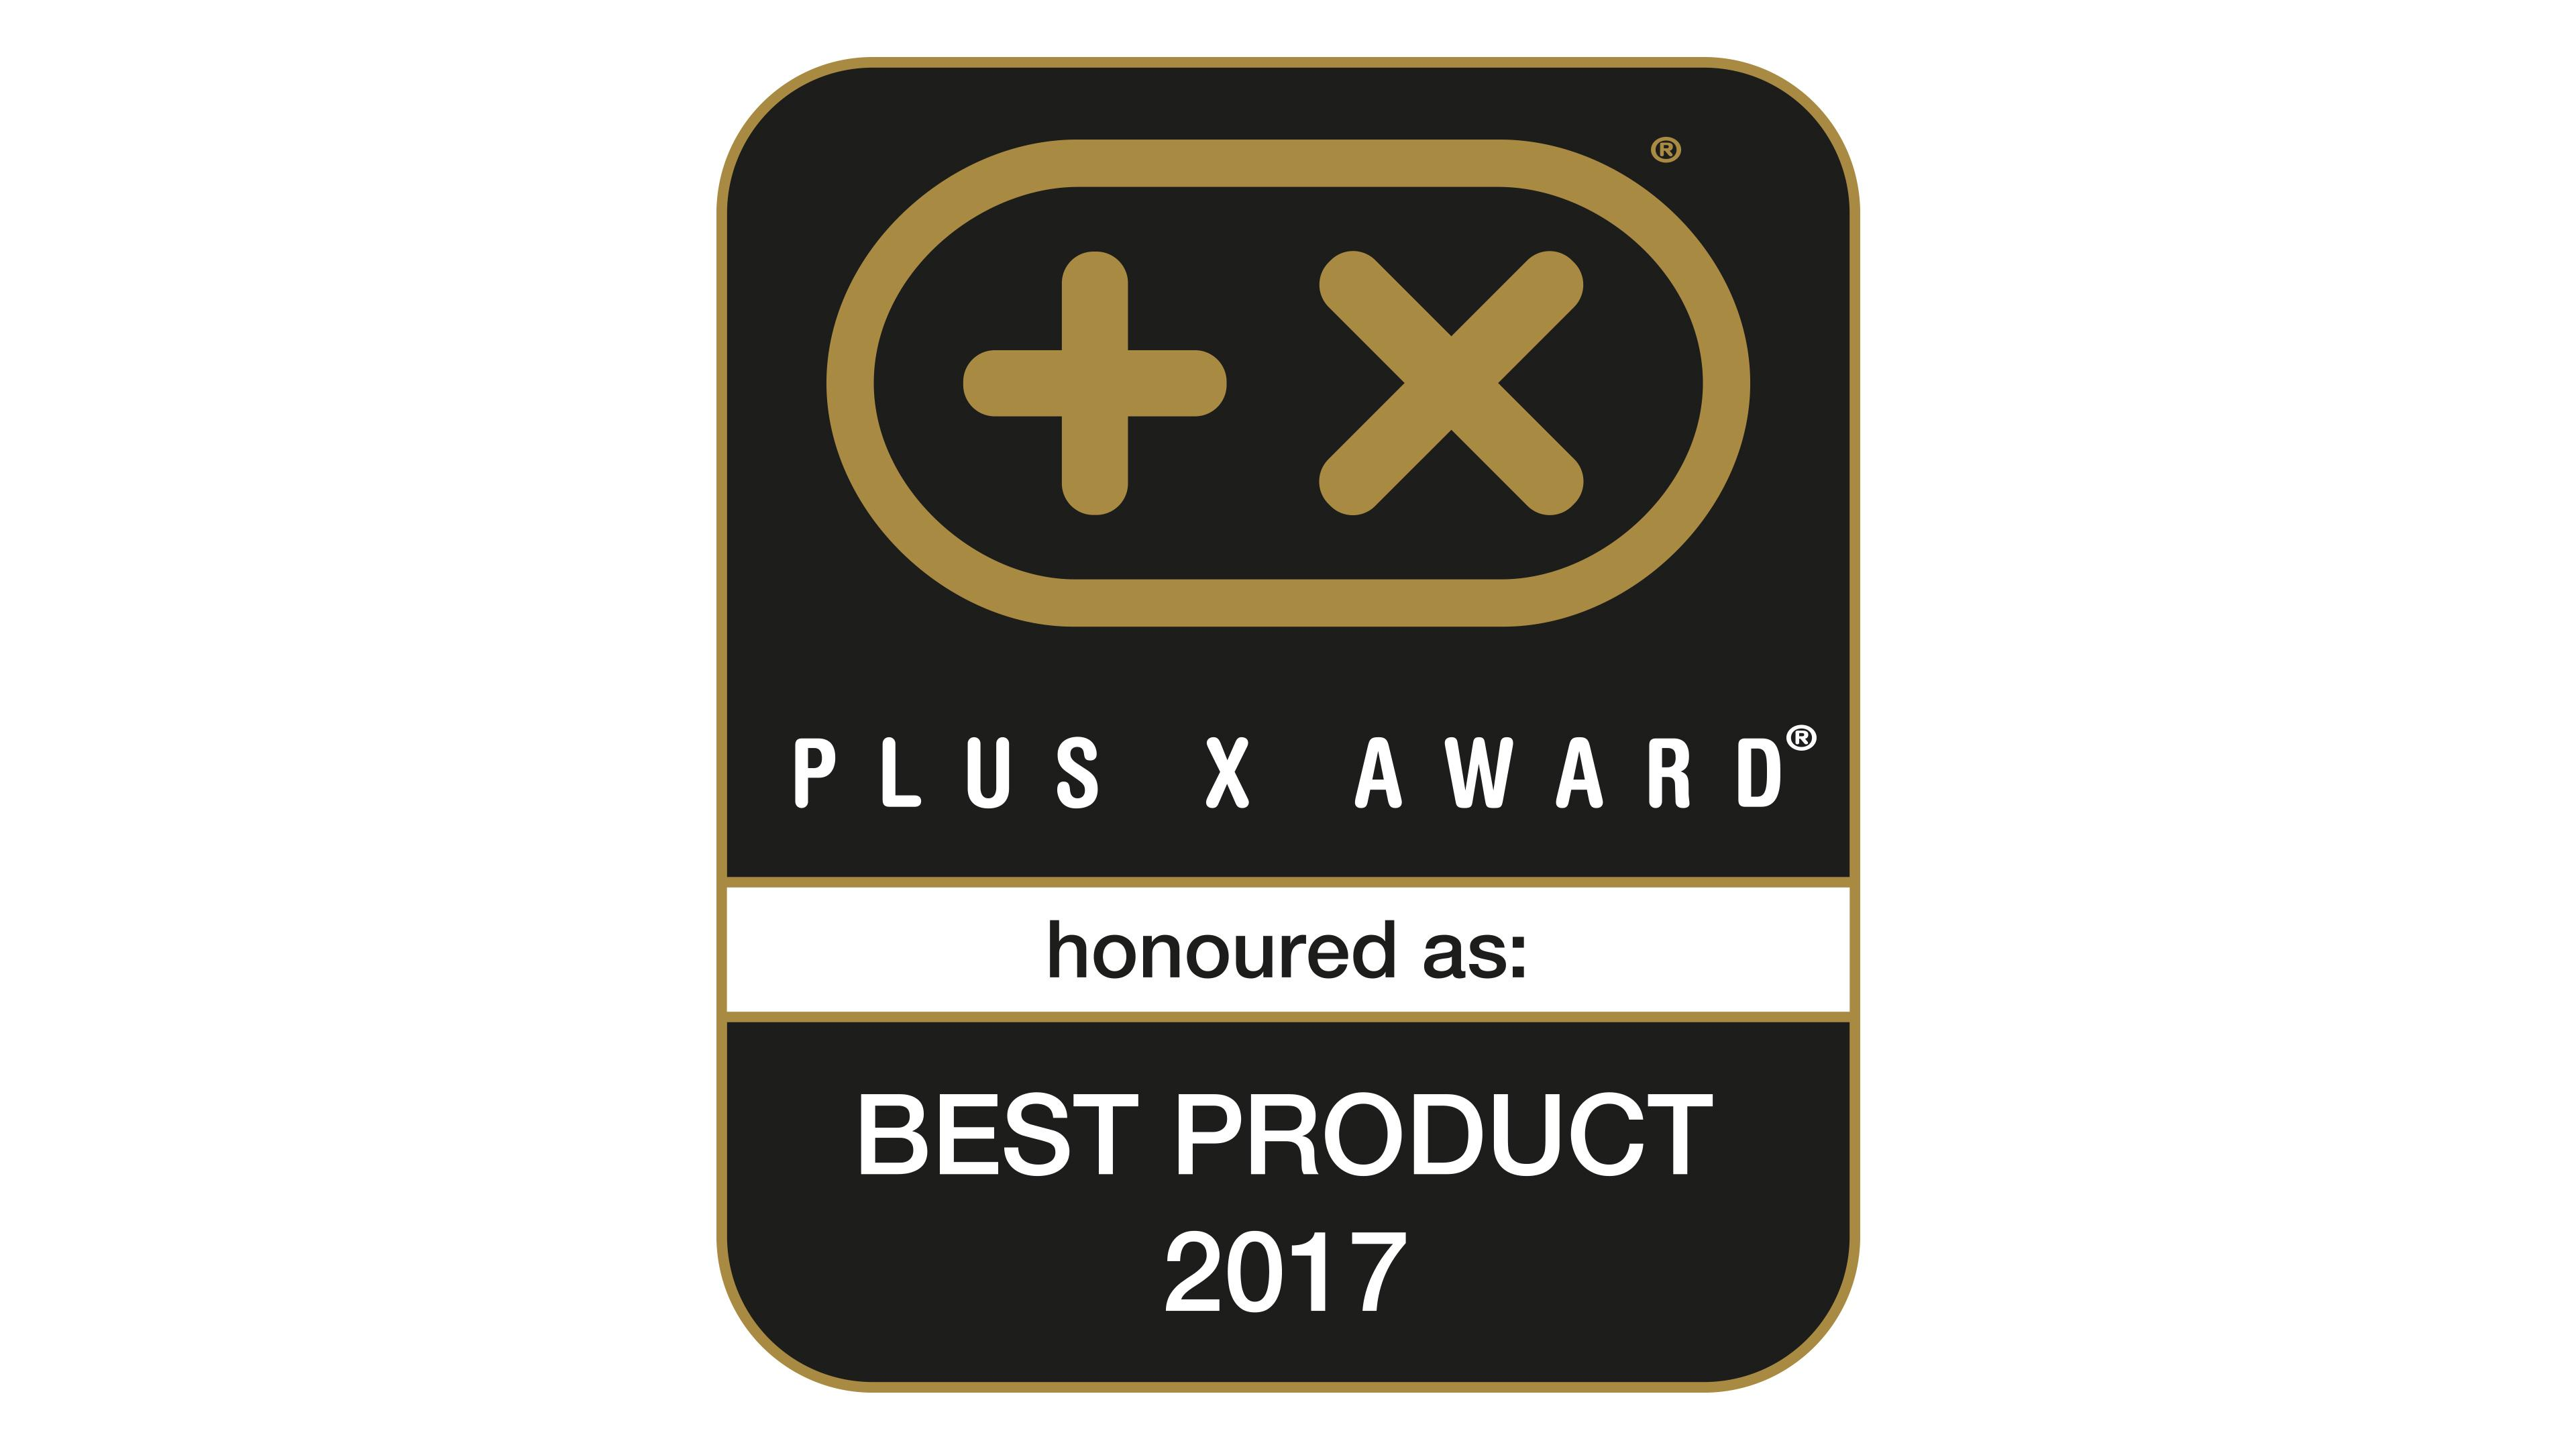 Plus X Award Best Product 2017